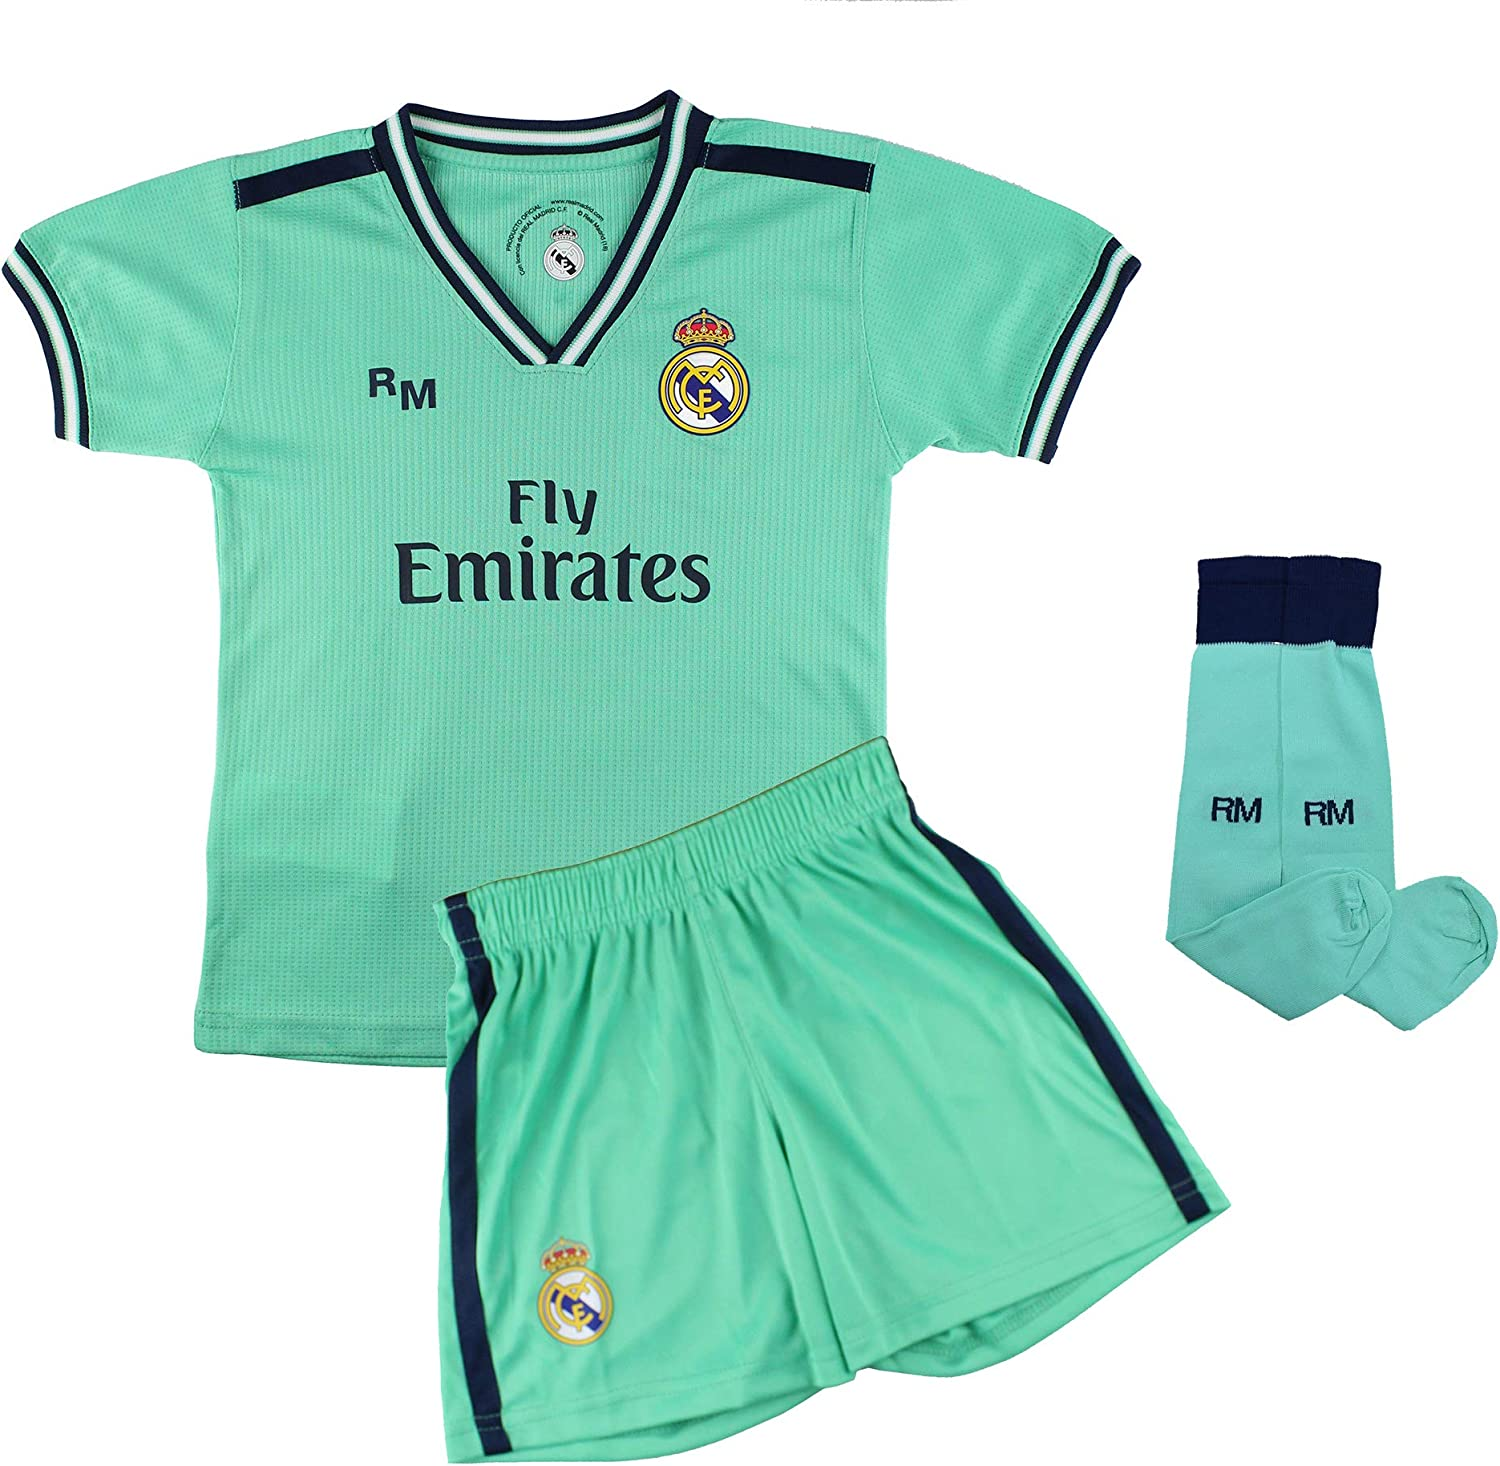 2020 Season 2019 Champions City Complete Set for Children Real Madrid Official Licensed Replica of the First Kit Smooth Back